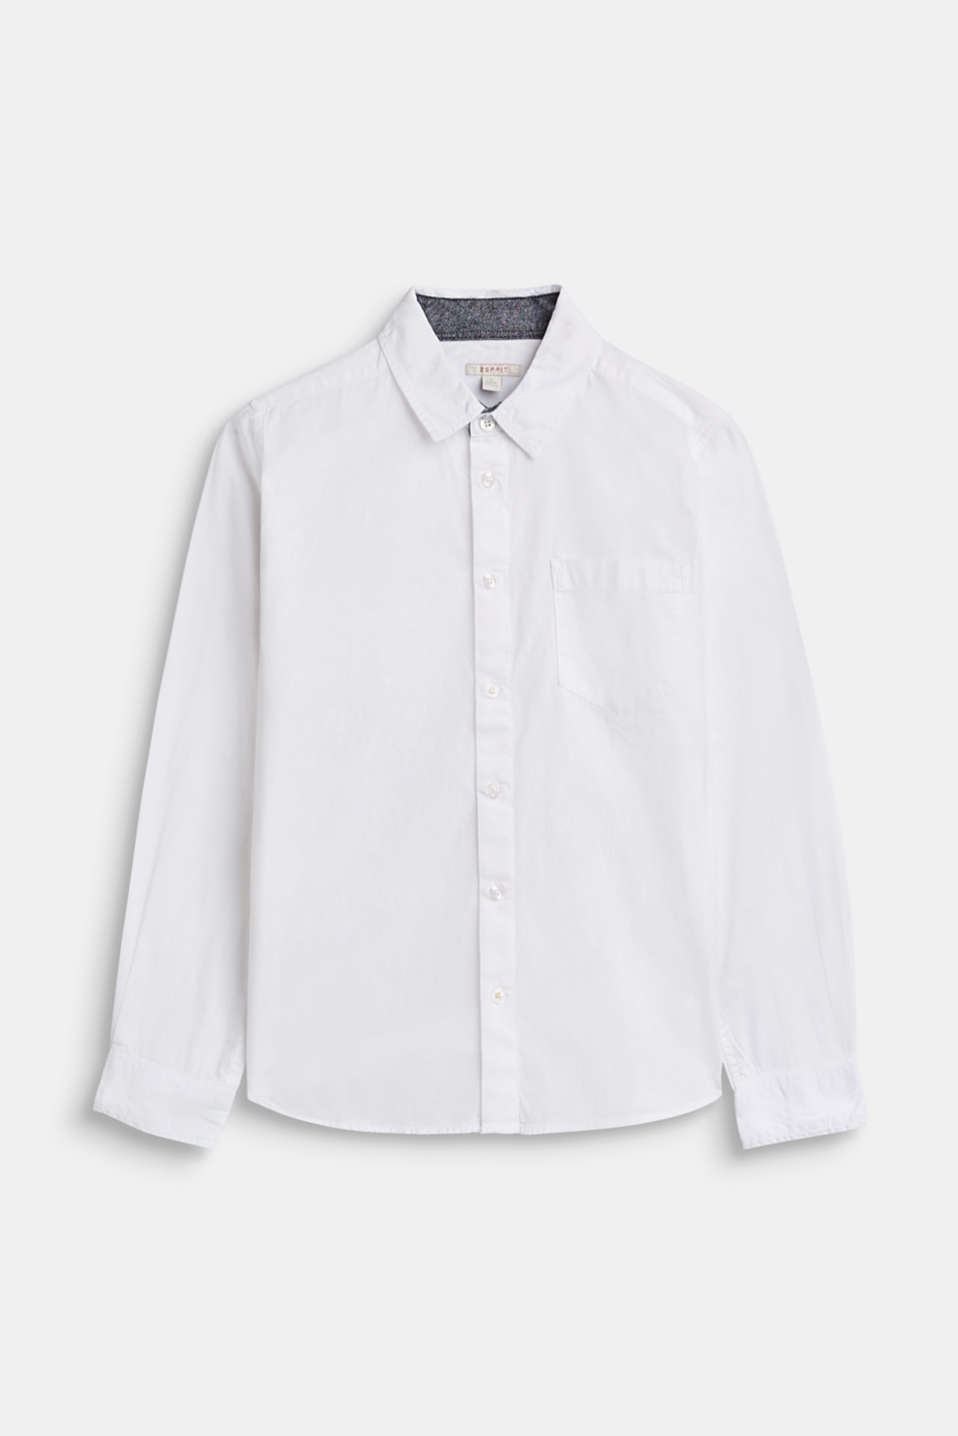 Esprit - Shirt with chambray detail, 100% cotton